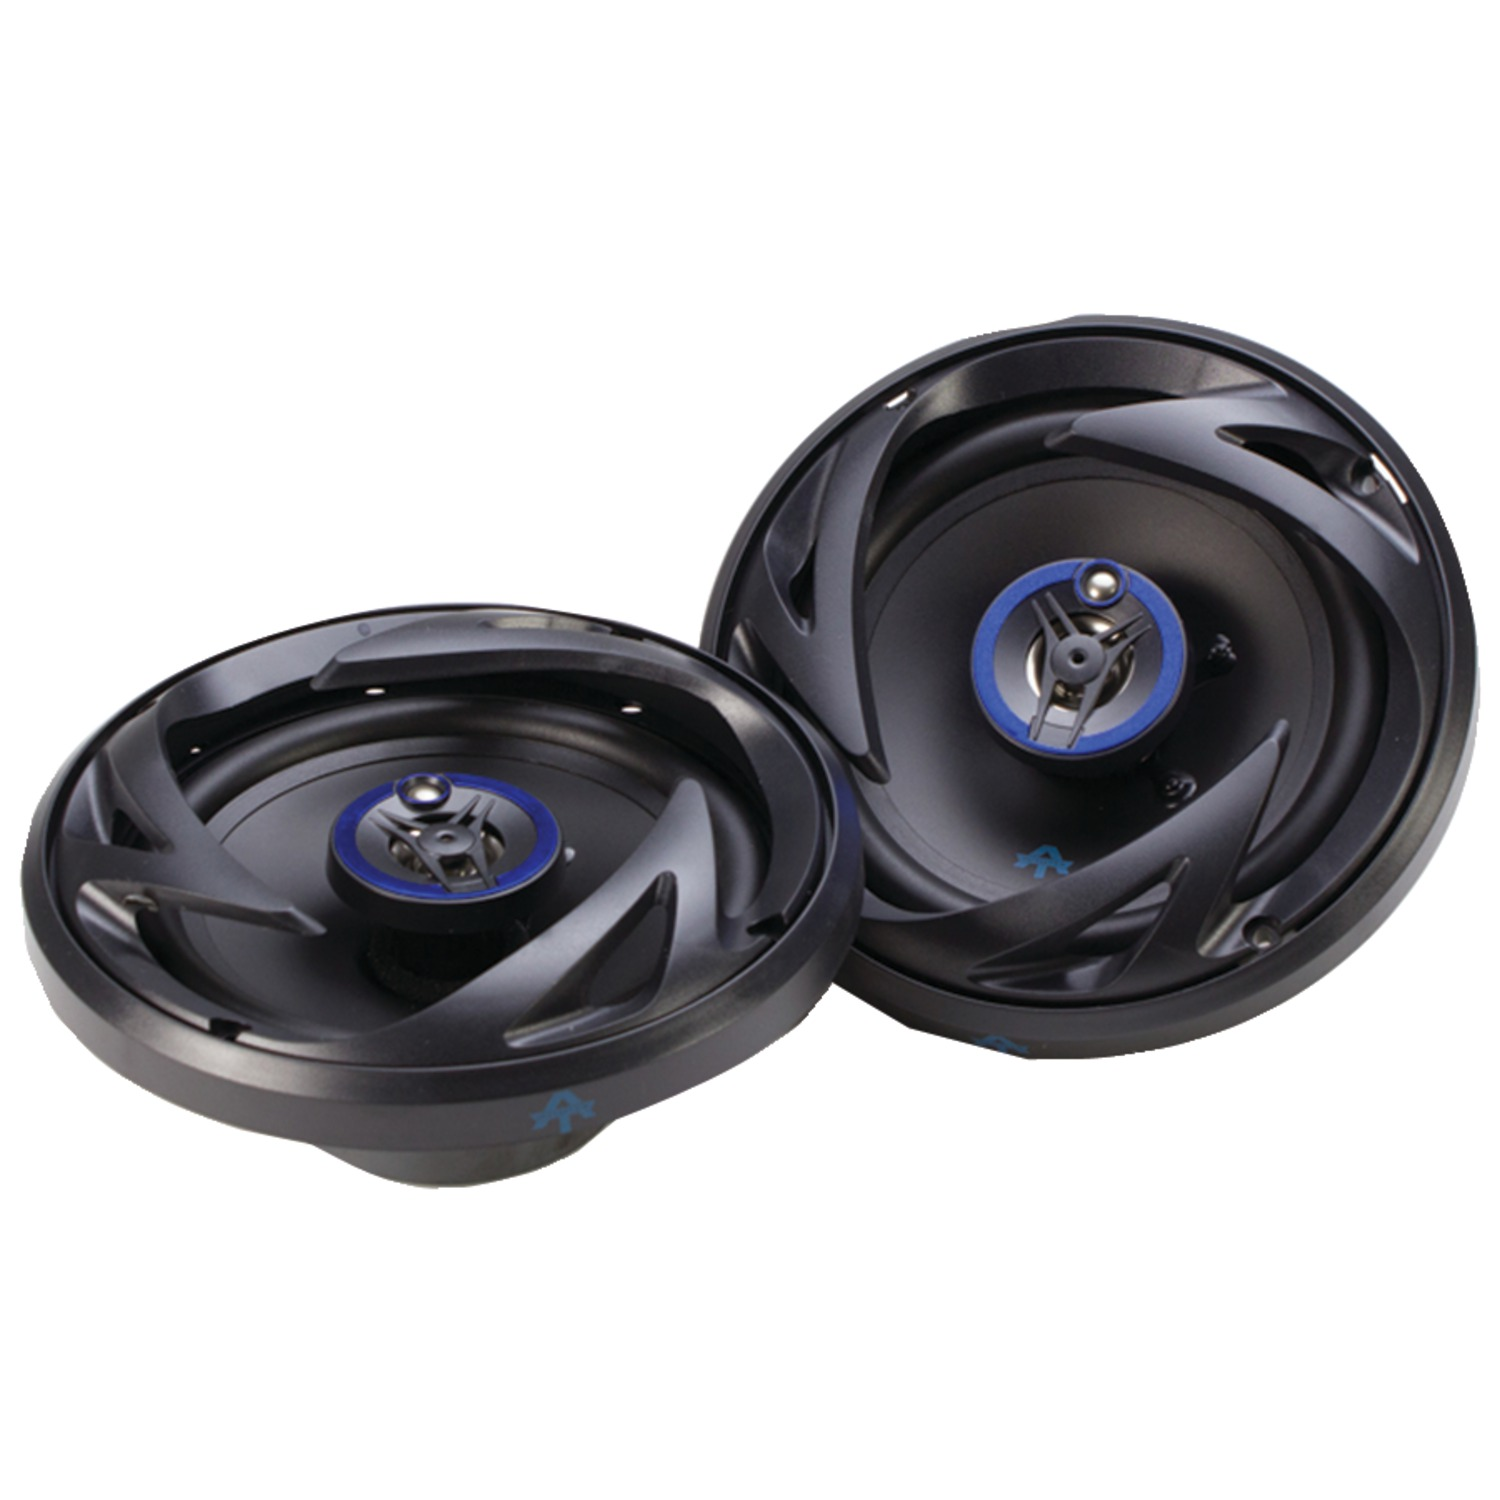 Autotek� ATS653 ATS Series SPEAKERS (6.5'''', 3 Way, 300 Watts)